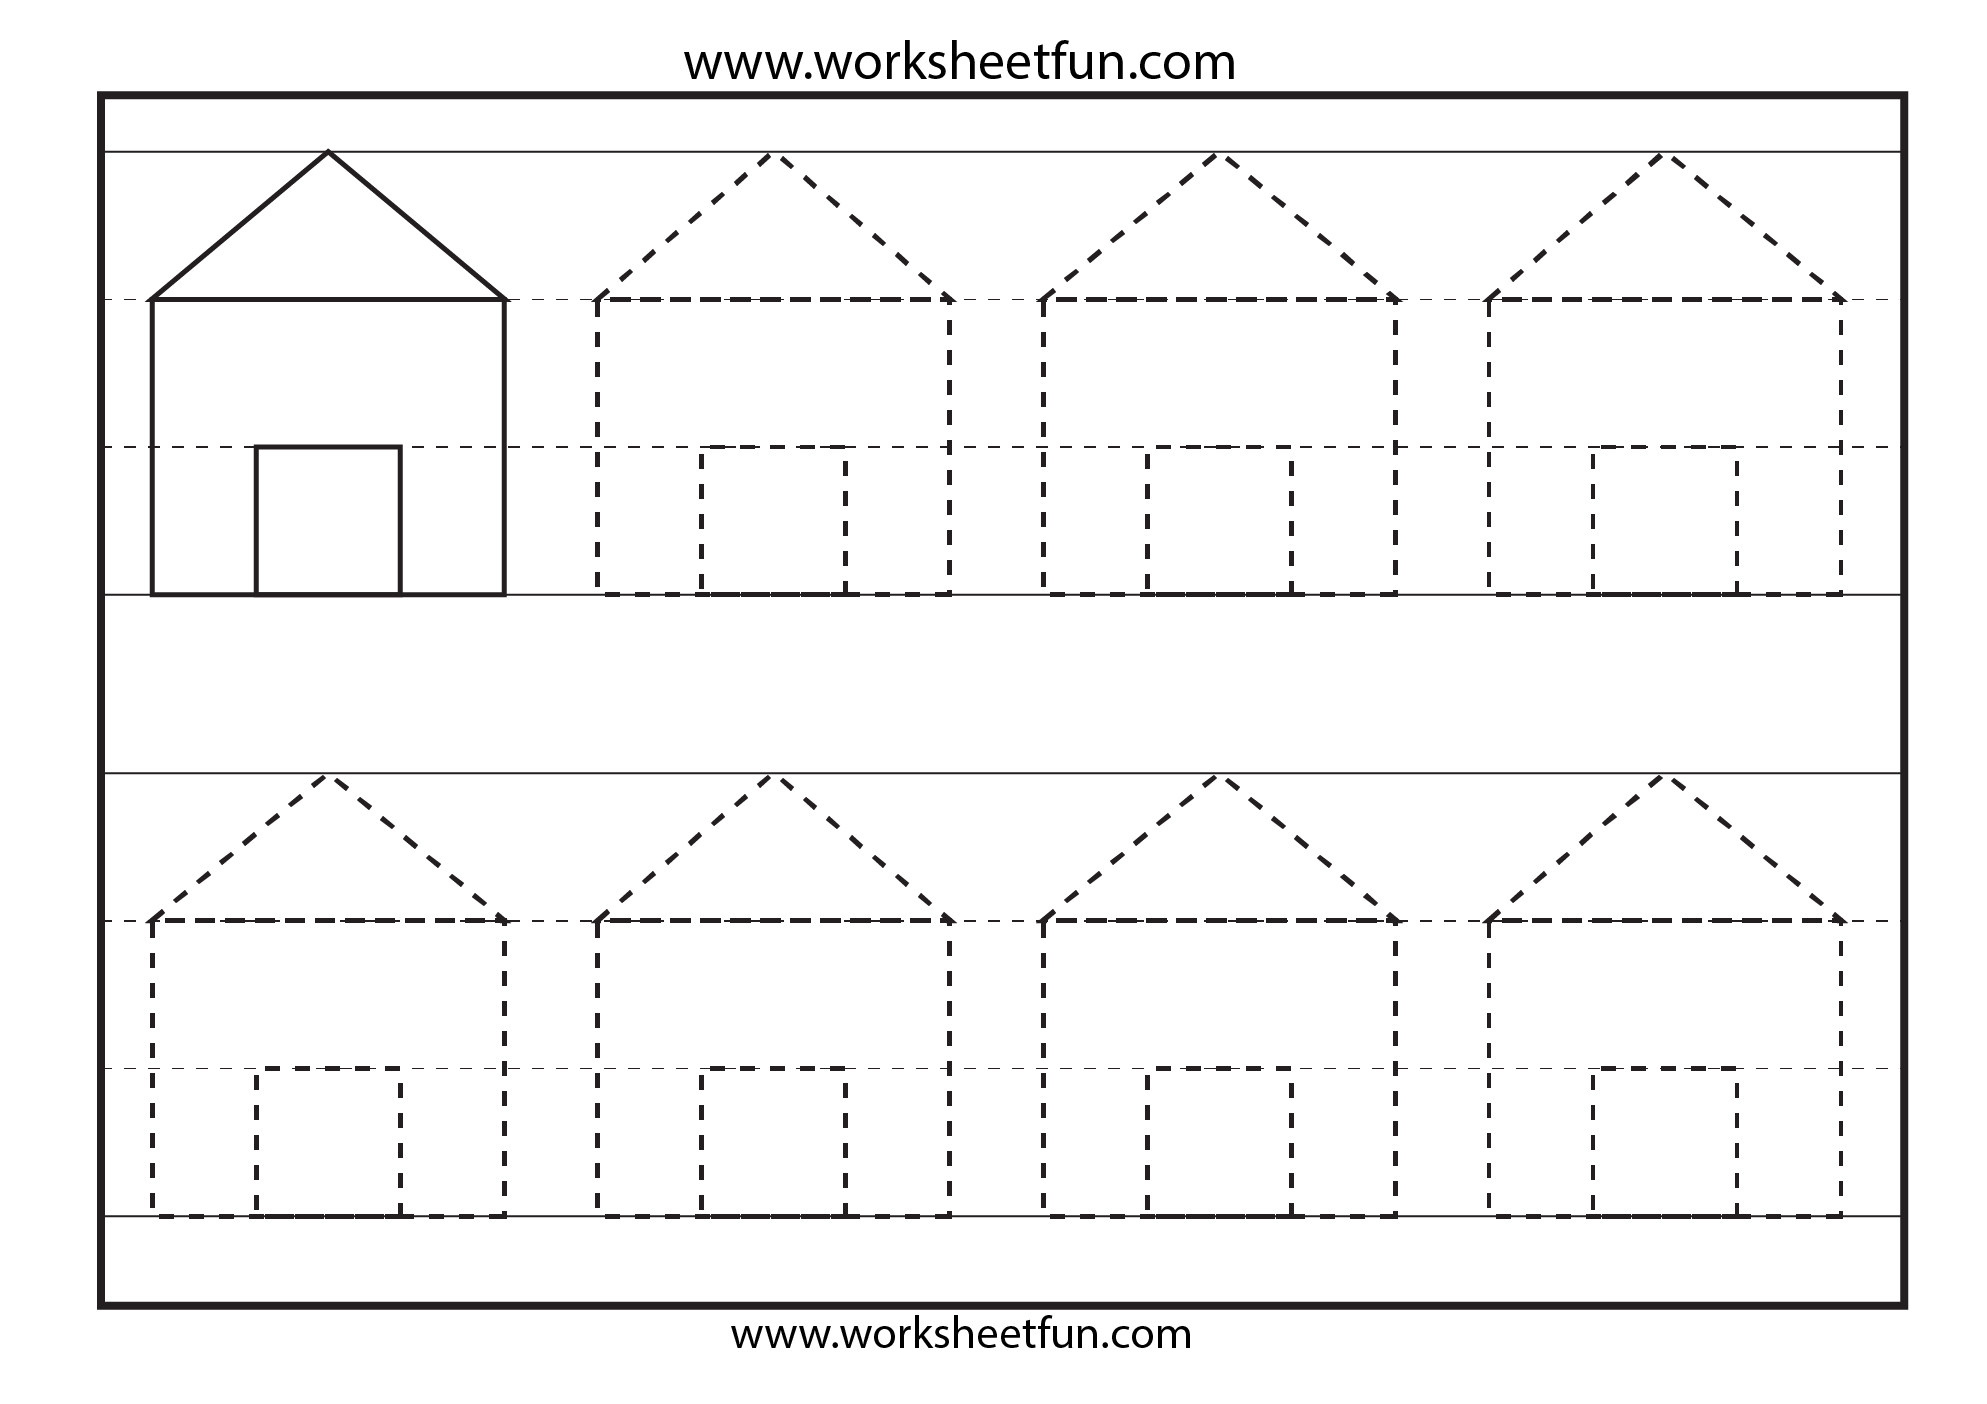 Worksheets Tracing Shapes Worksheets tracing shapes preschool worksheets delwfg com 1000 images about for gia on pinterest shapes